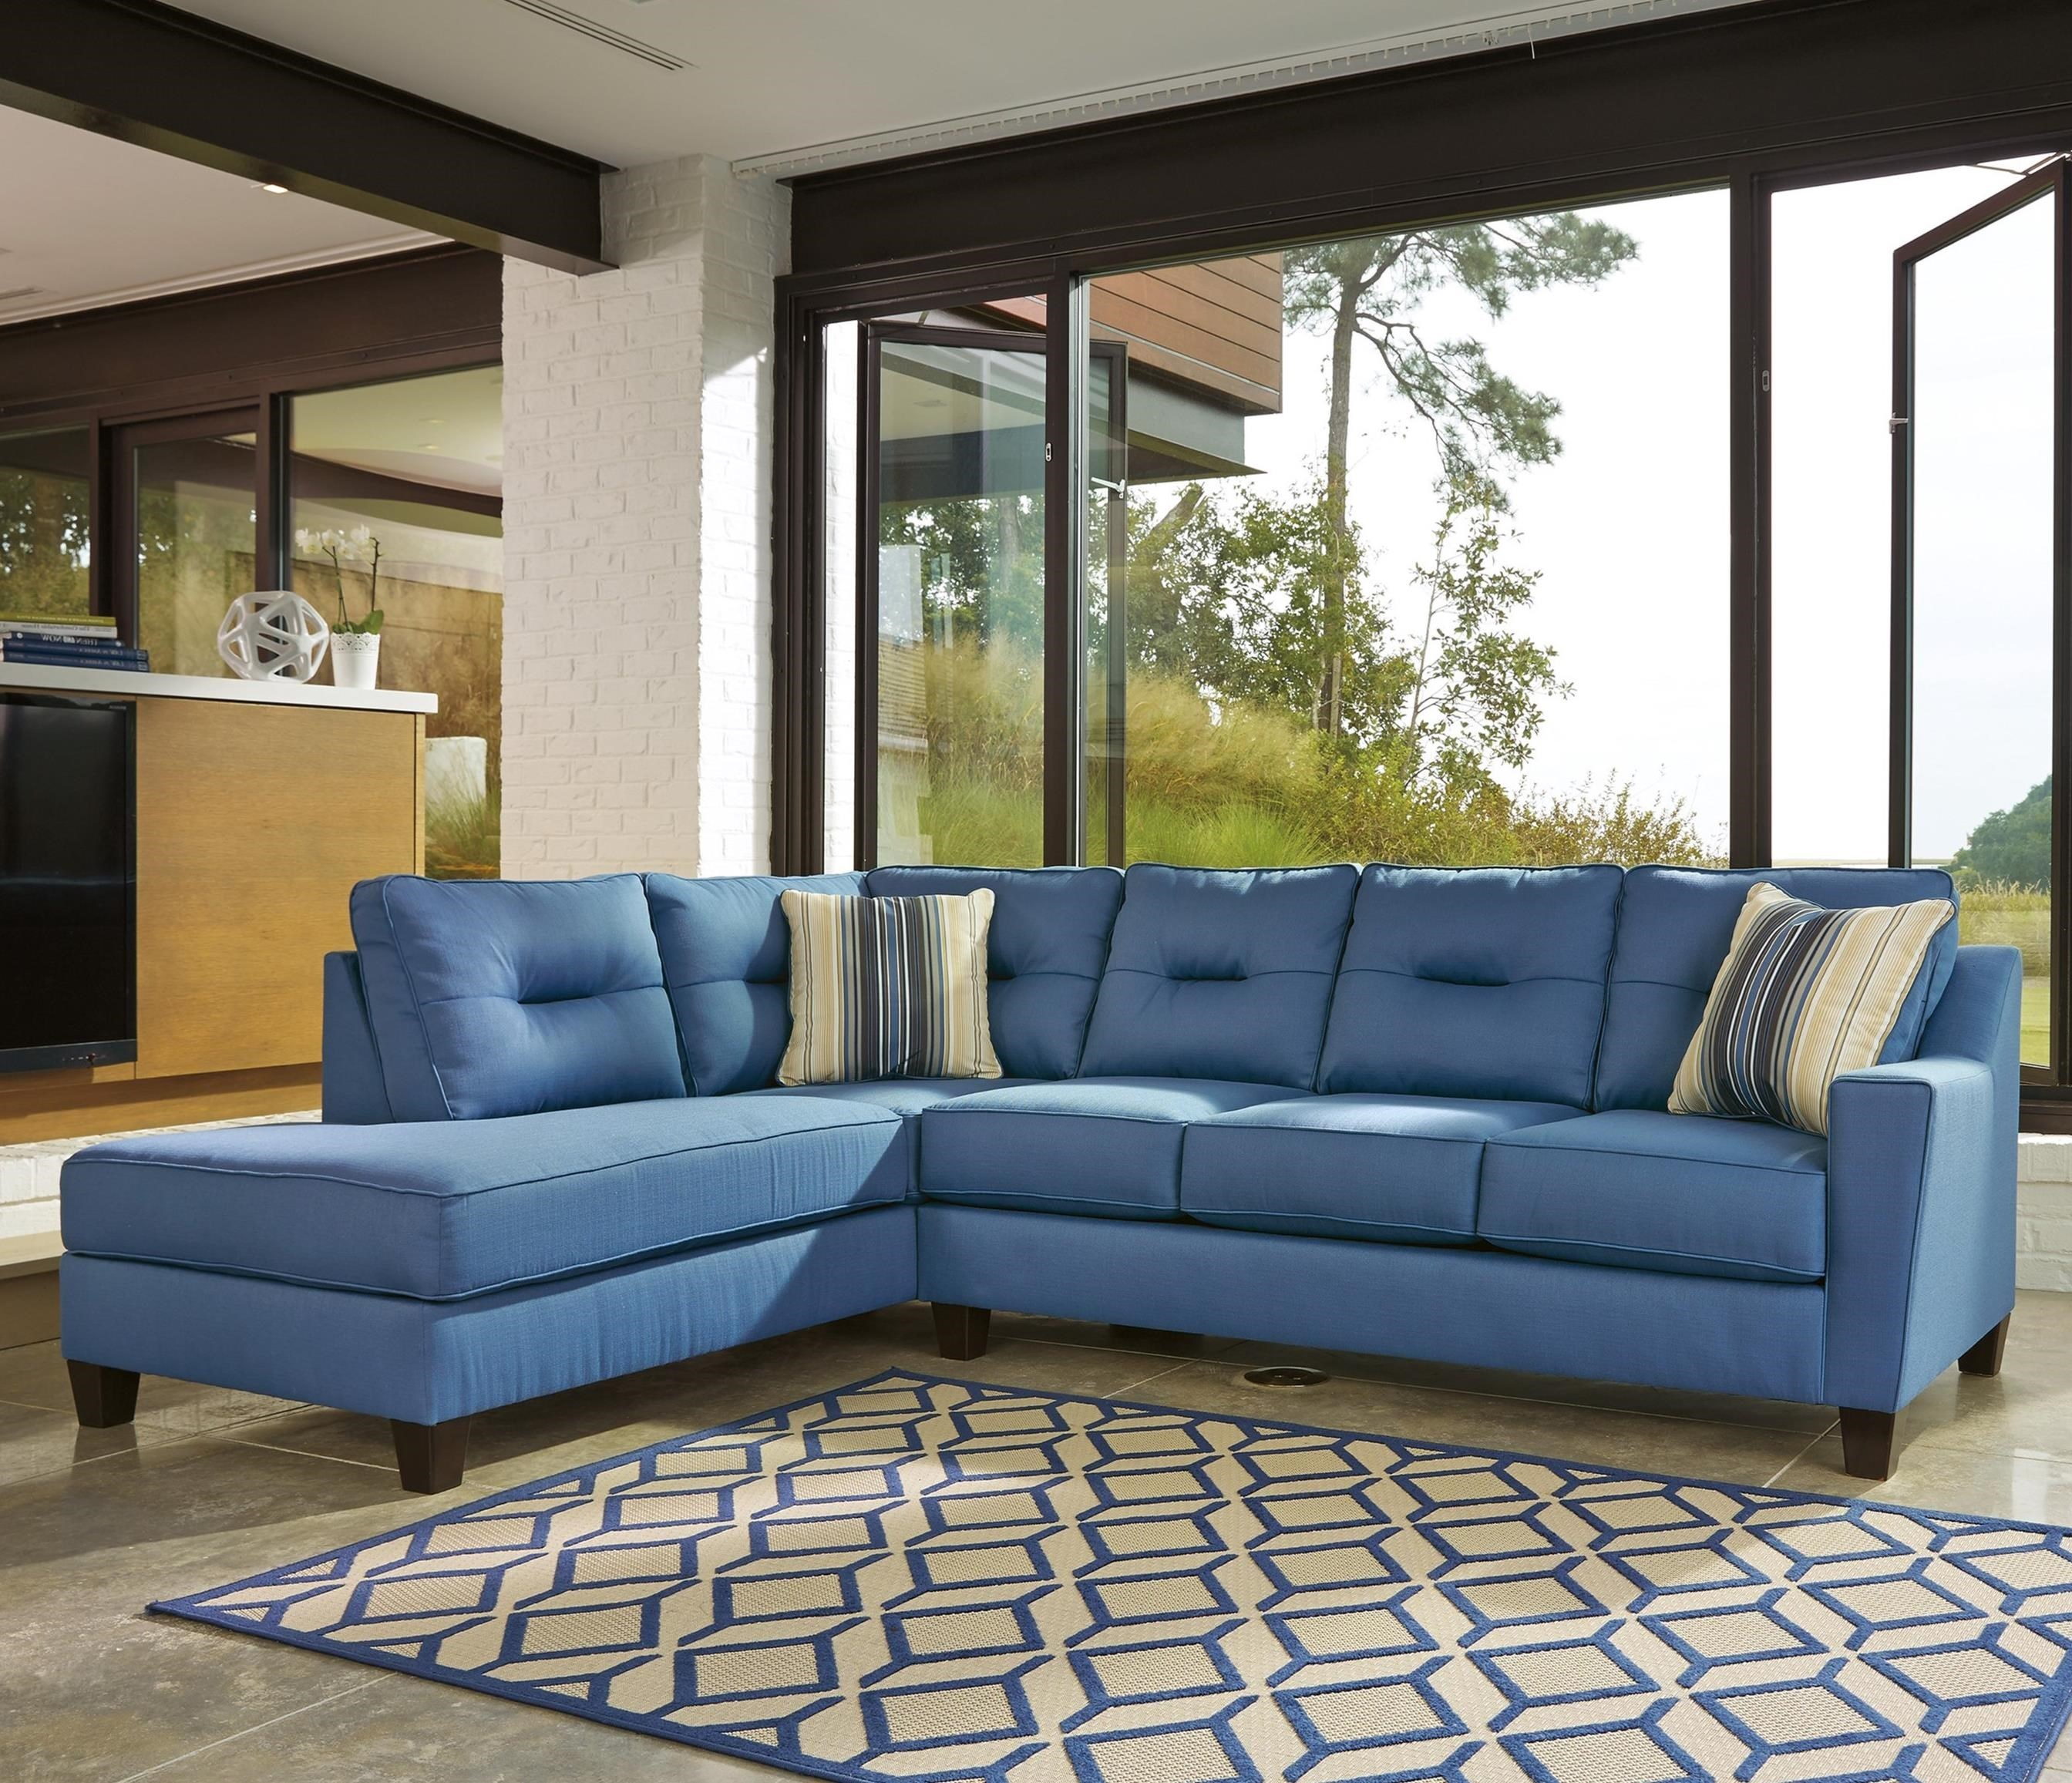 Benchcraft Kirwin Nuvella Sectional with Sleeper Sofa u0026 Left Chaise in Performance Fabric : blue sectional sofa with chaise - Sectionals, Sofas & Couches